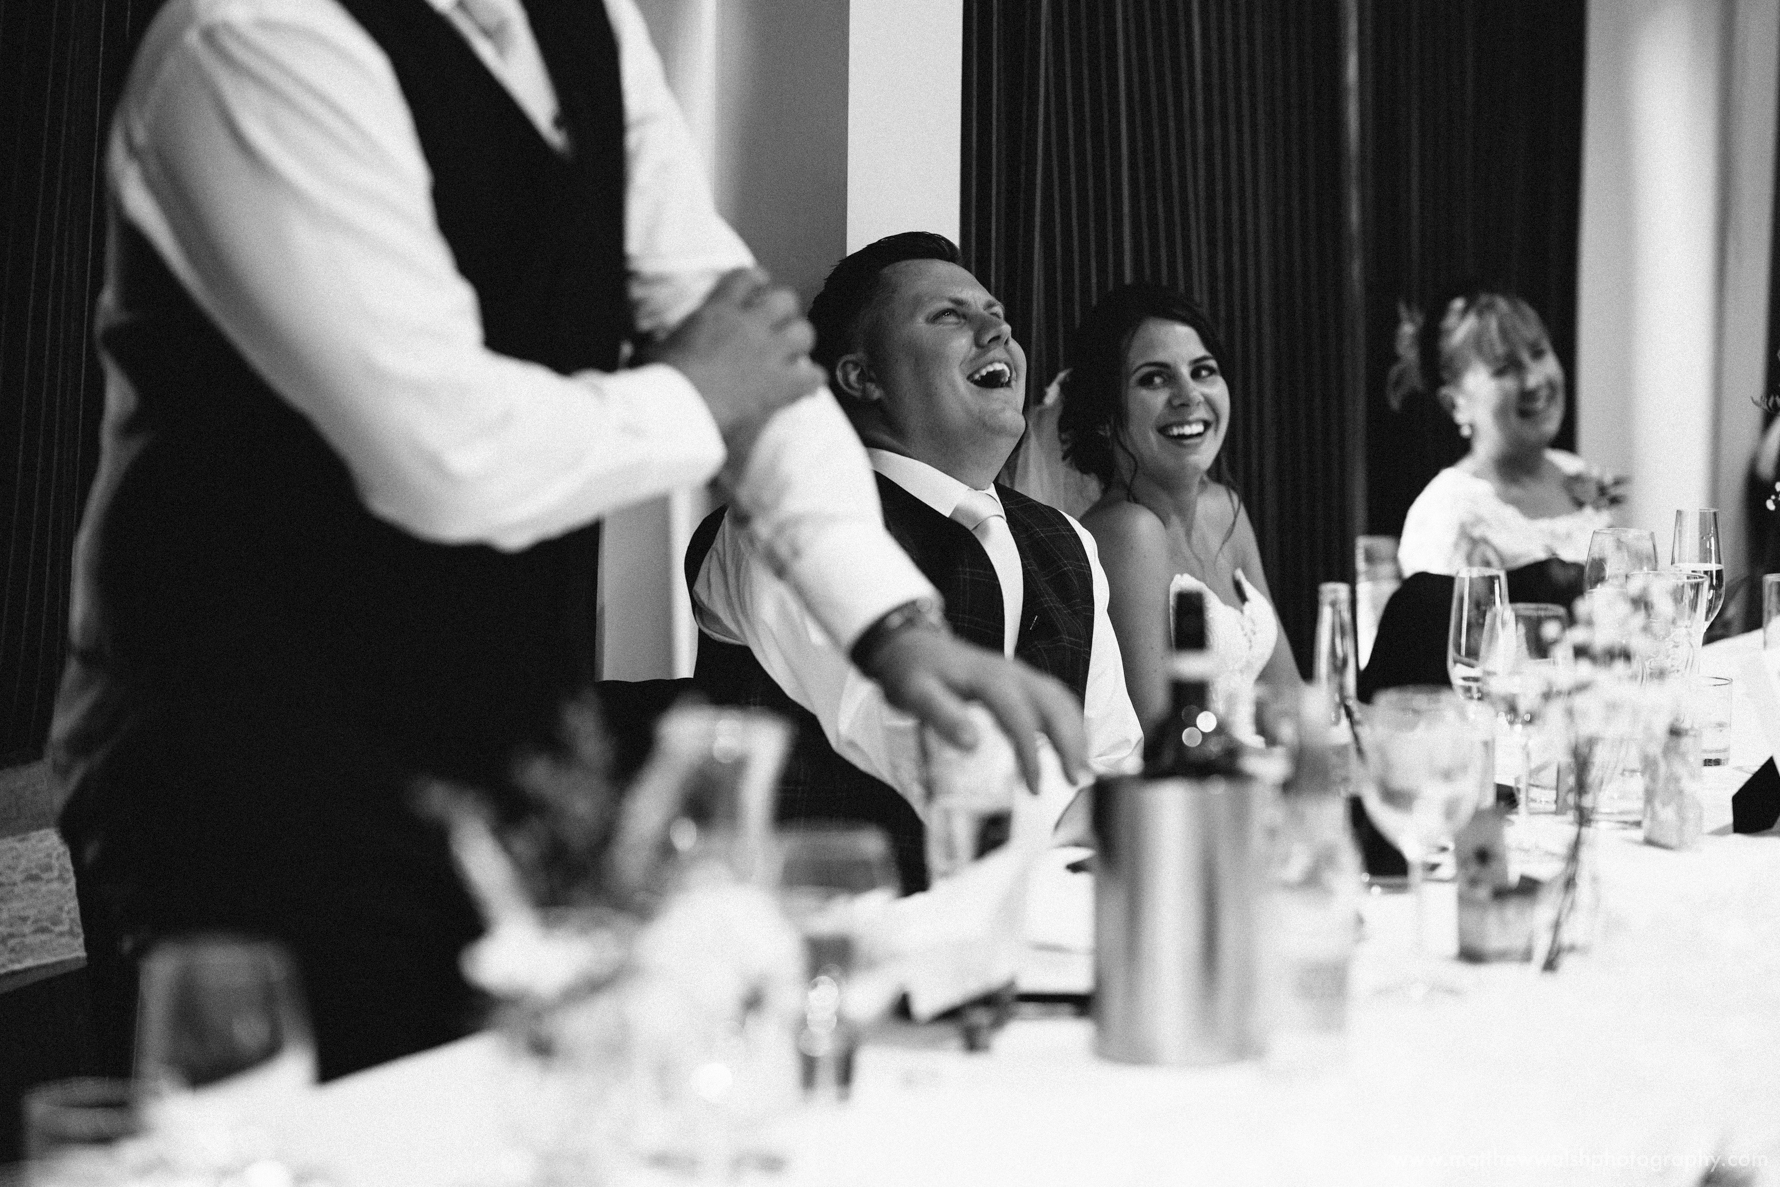 The groom laughing at the best man speech